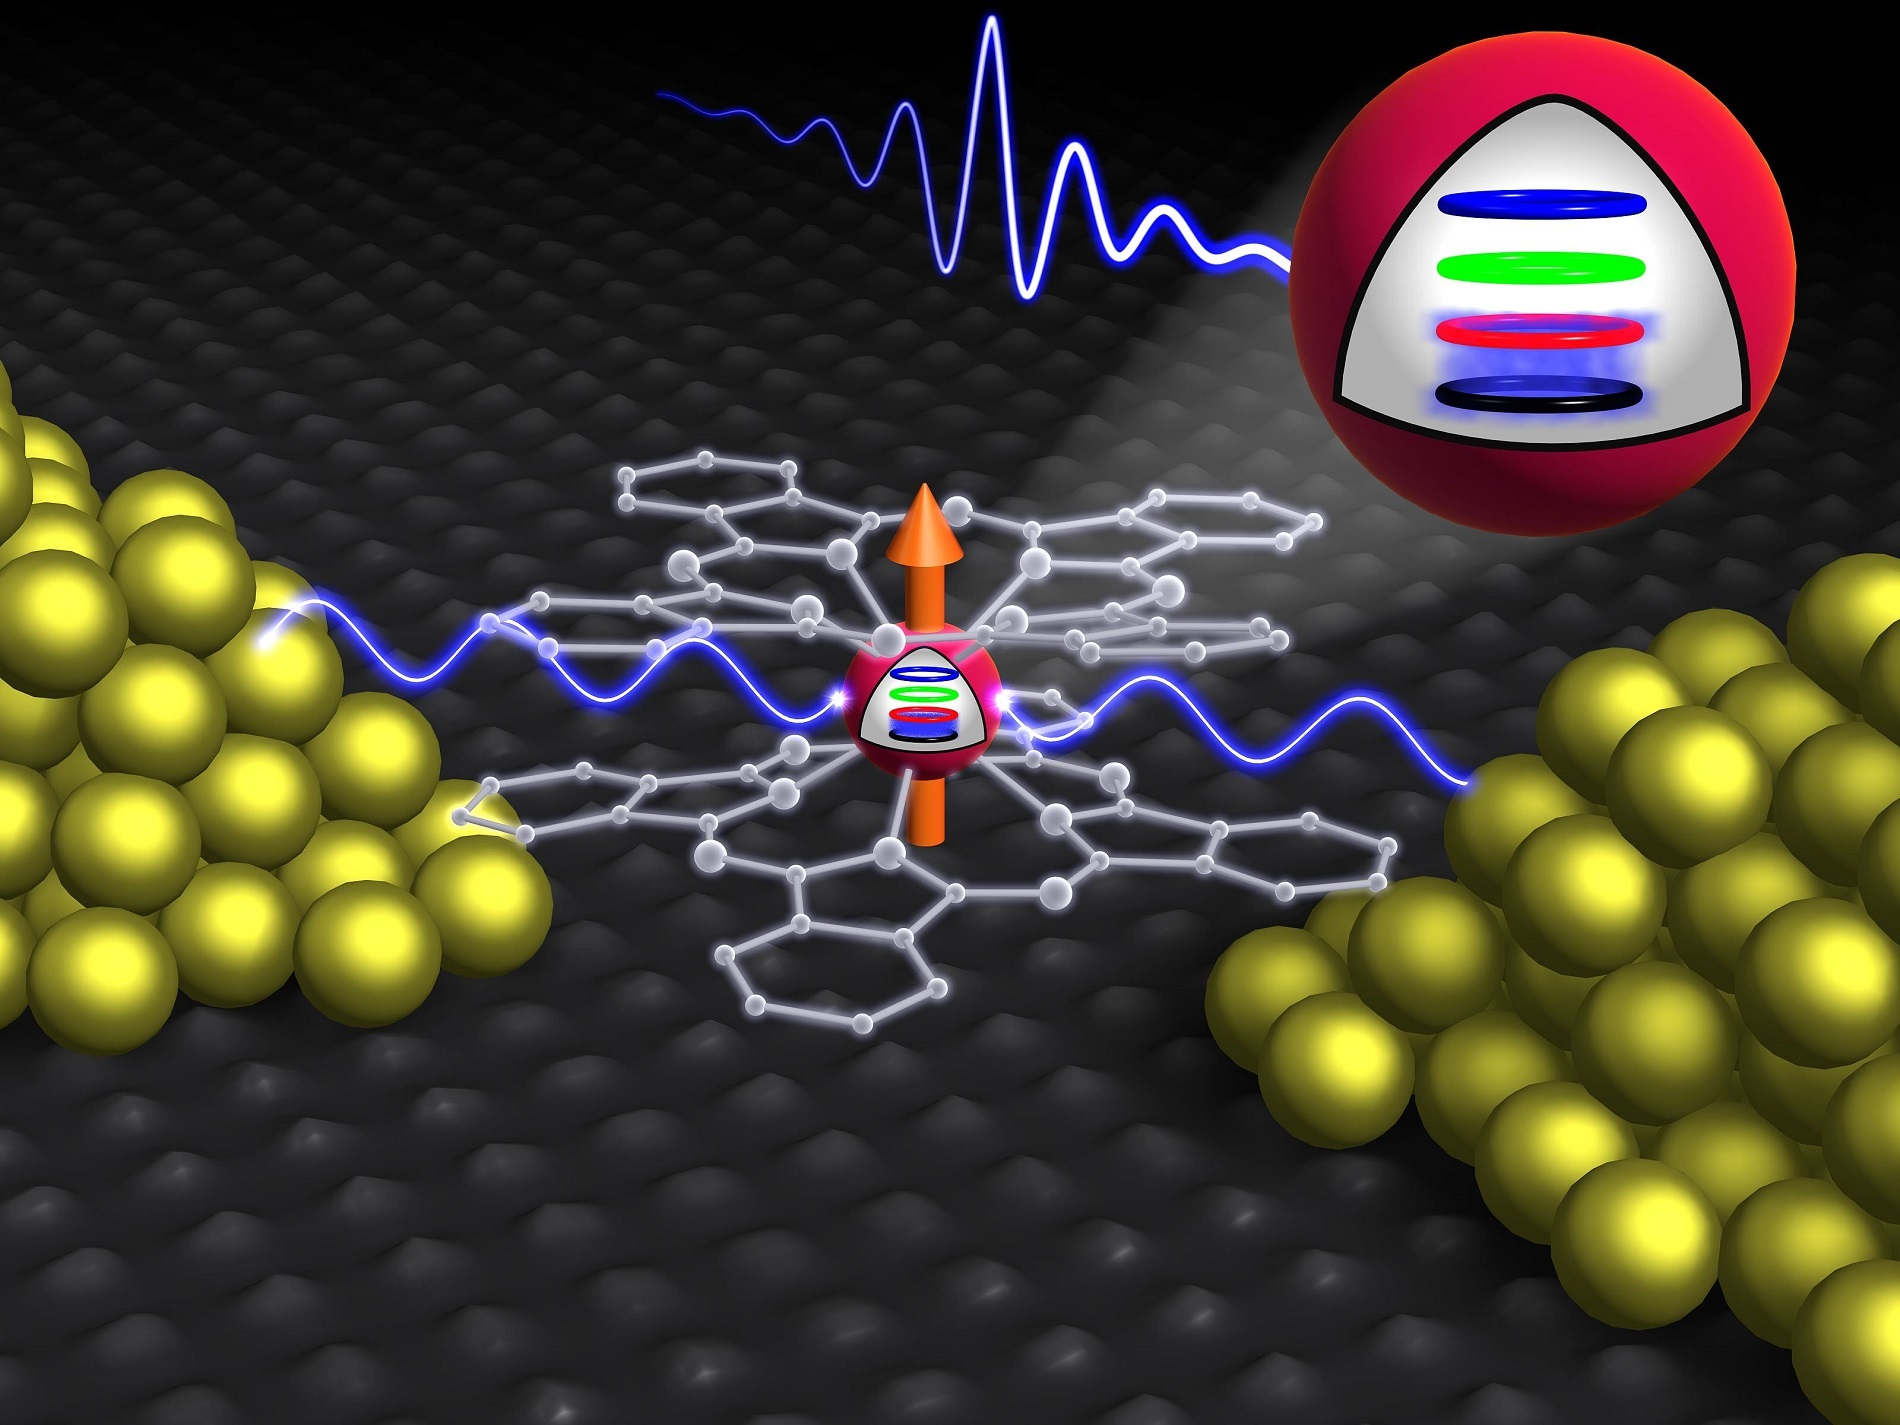 Upon execution of Grover's quantum algorithm, the terbium single-molecule transistor reads out unsorted databases